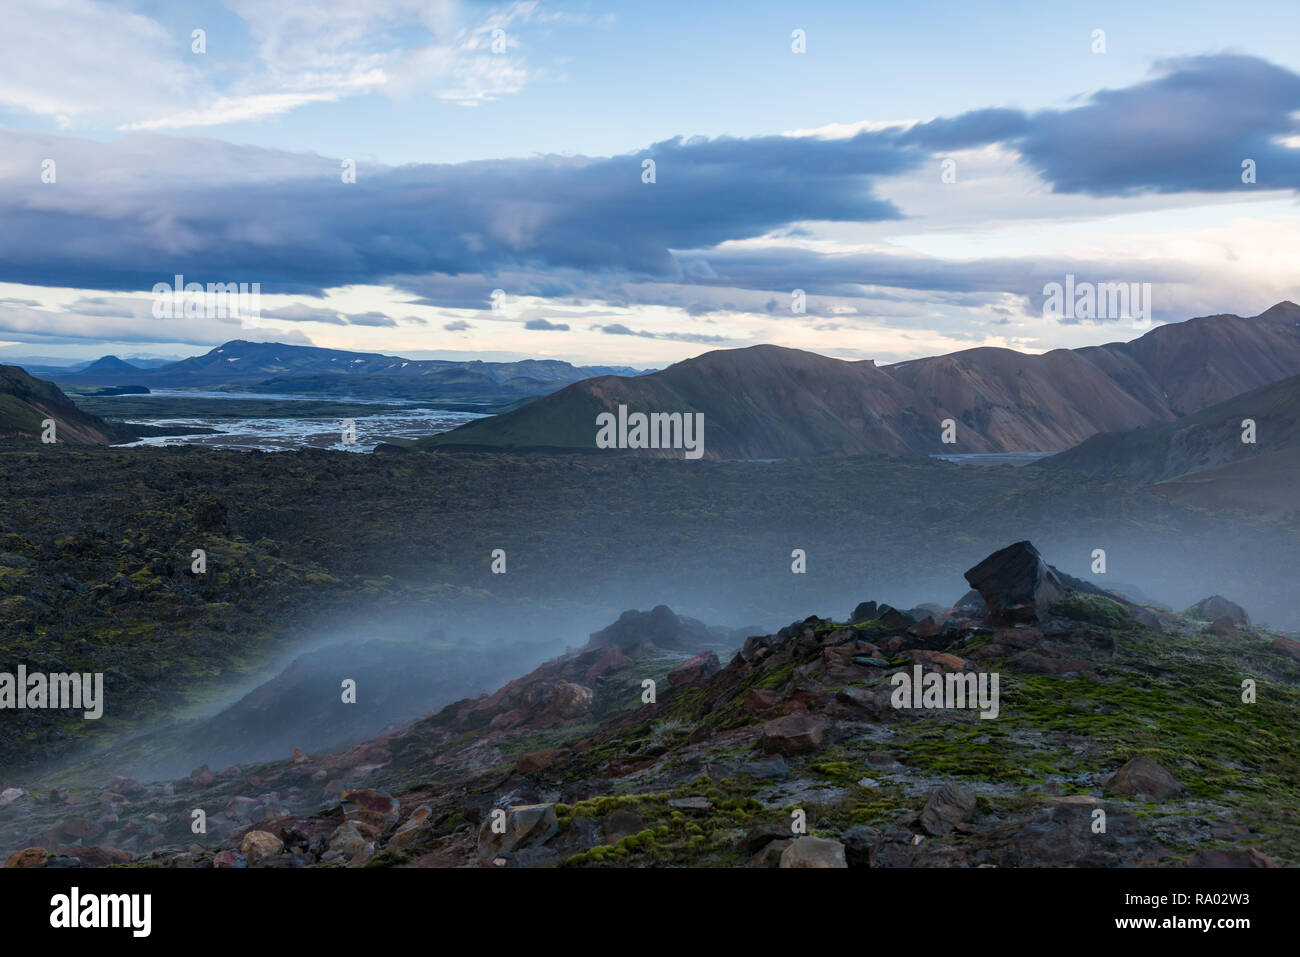 Mountains of Iceland, smoking fumaroles on foregroung - Stock Image